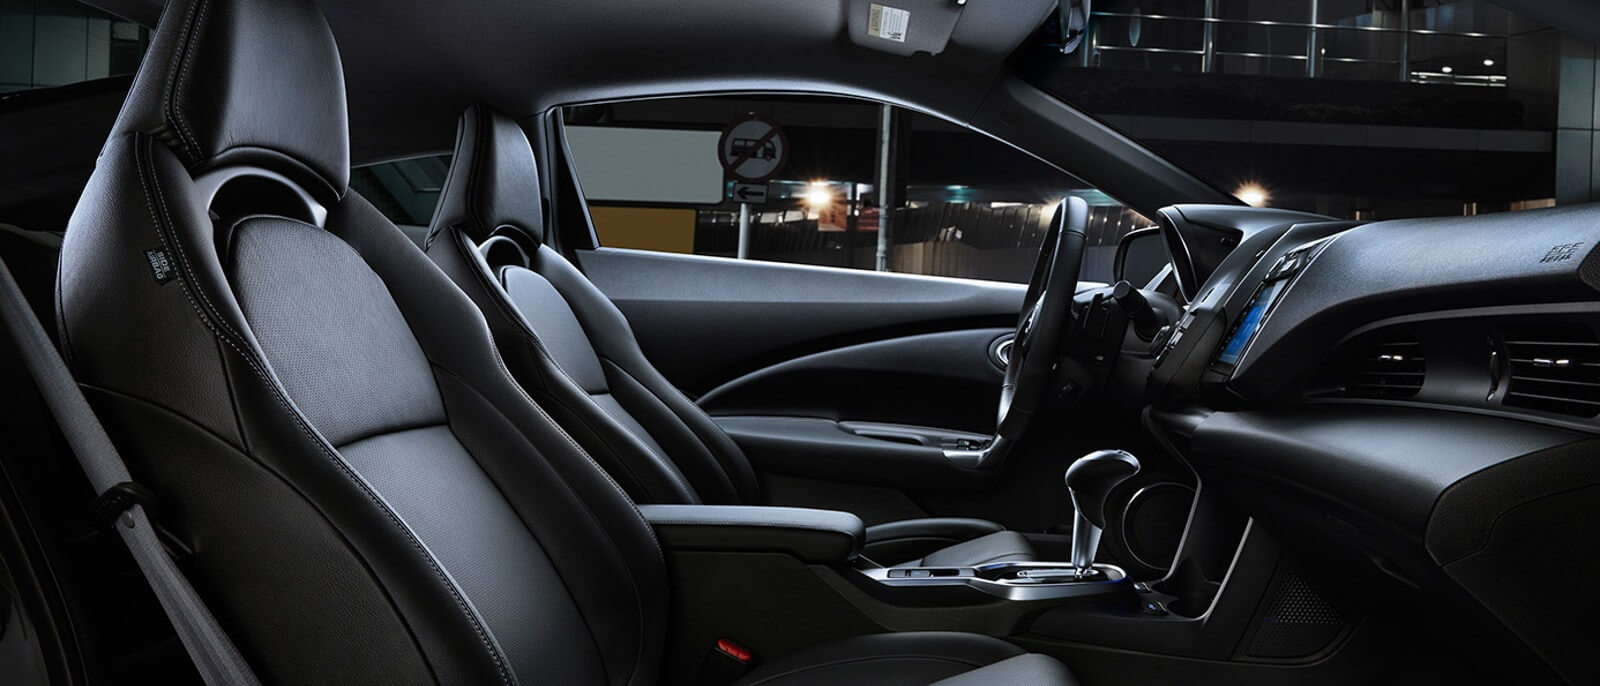 2016 Honda CR Z Interior Seats ... Awesome Design